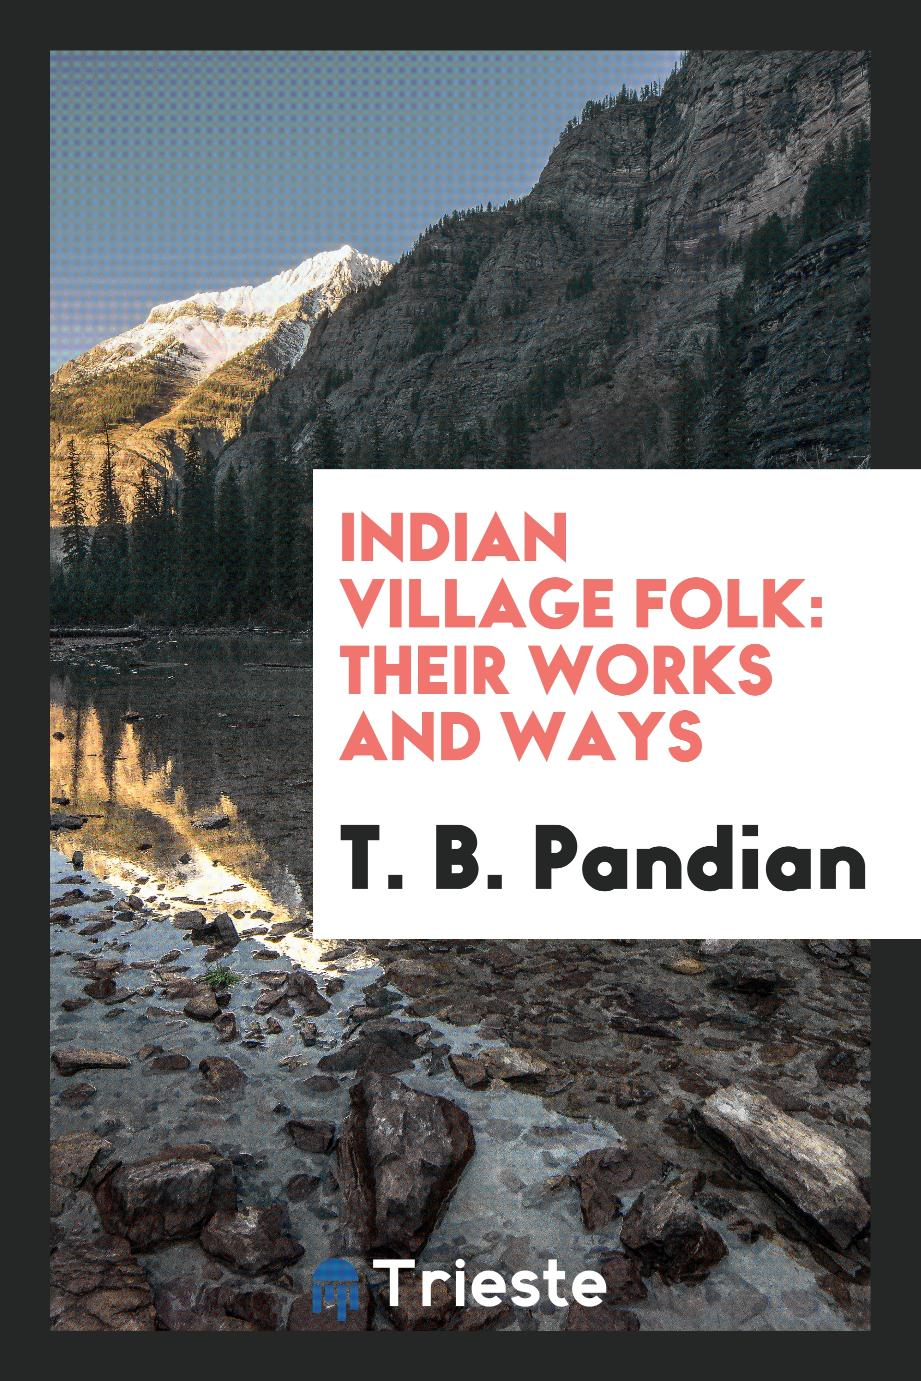 Indian village folk: their works and ways